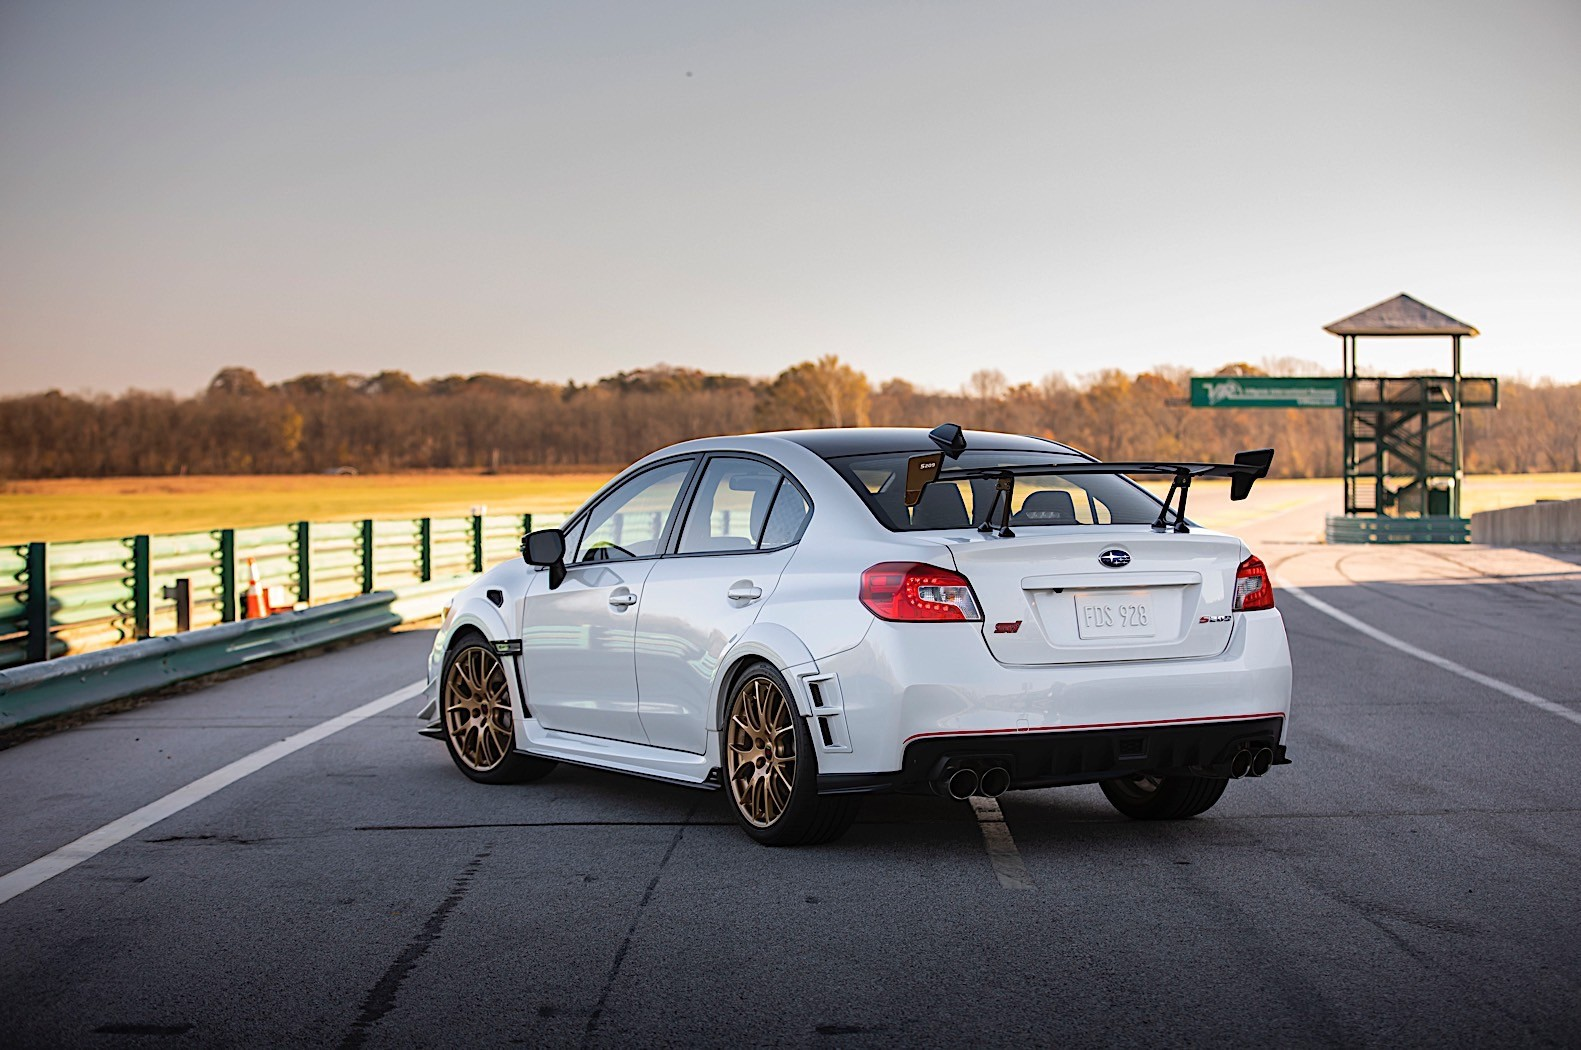 Subaru Sti S209 Is Exclusively For Americans Autoevolution